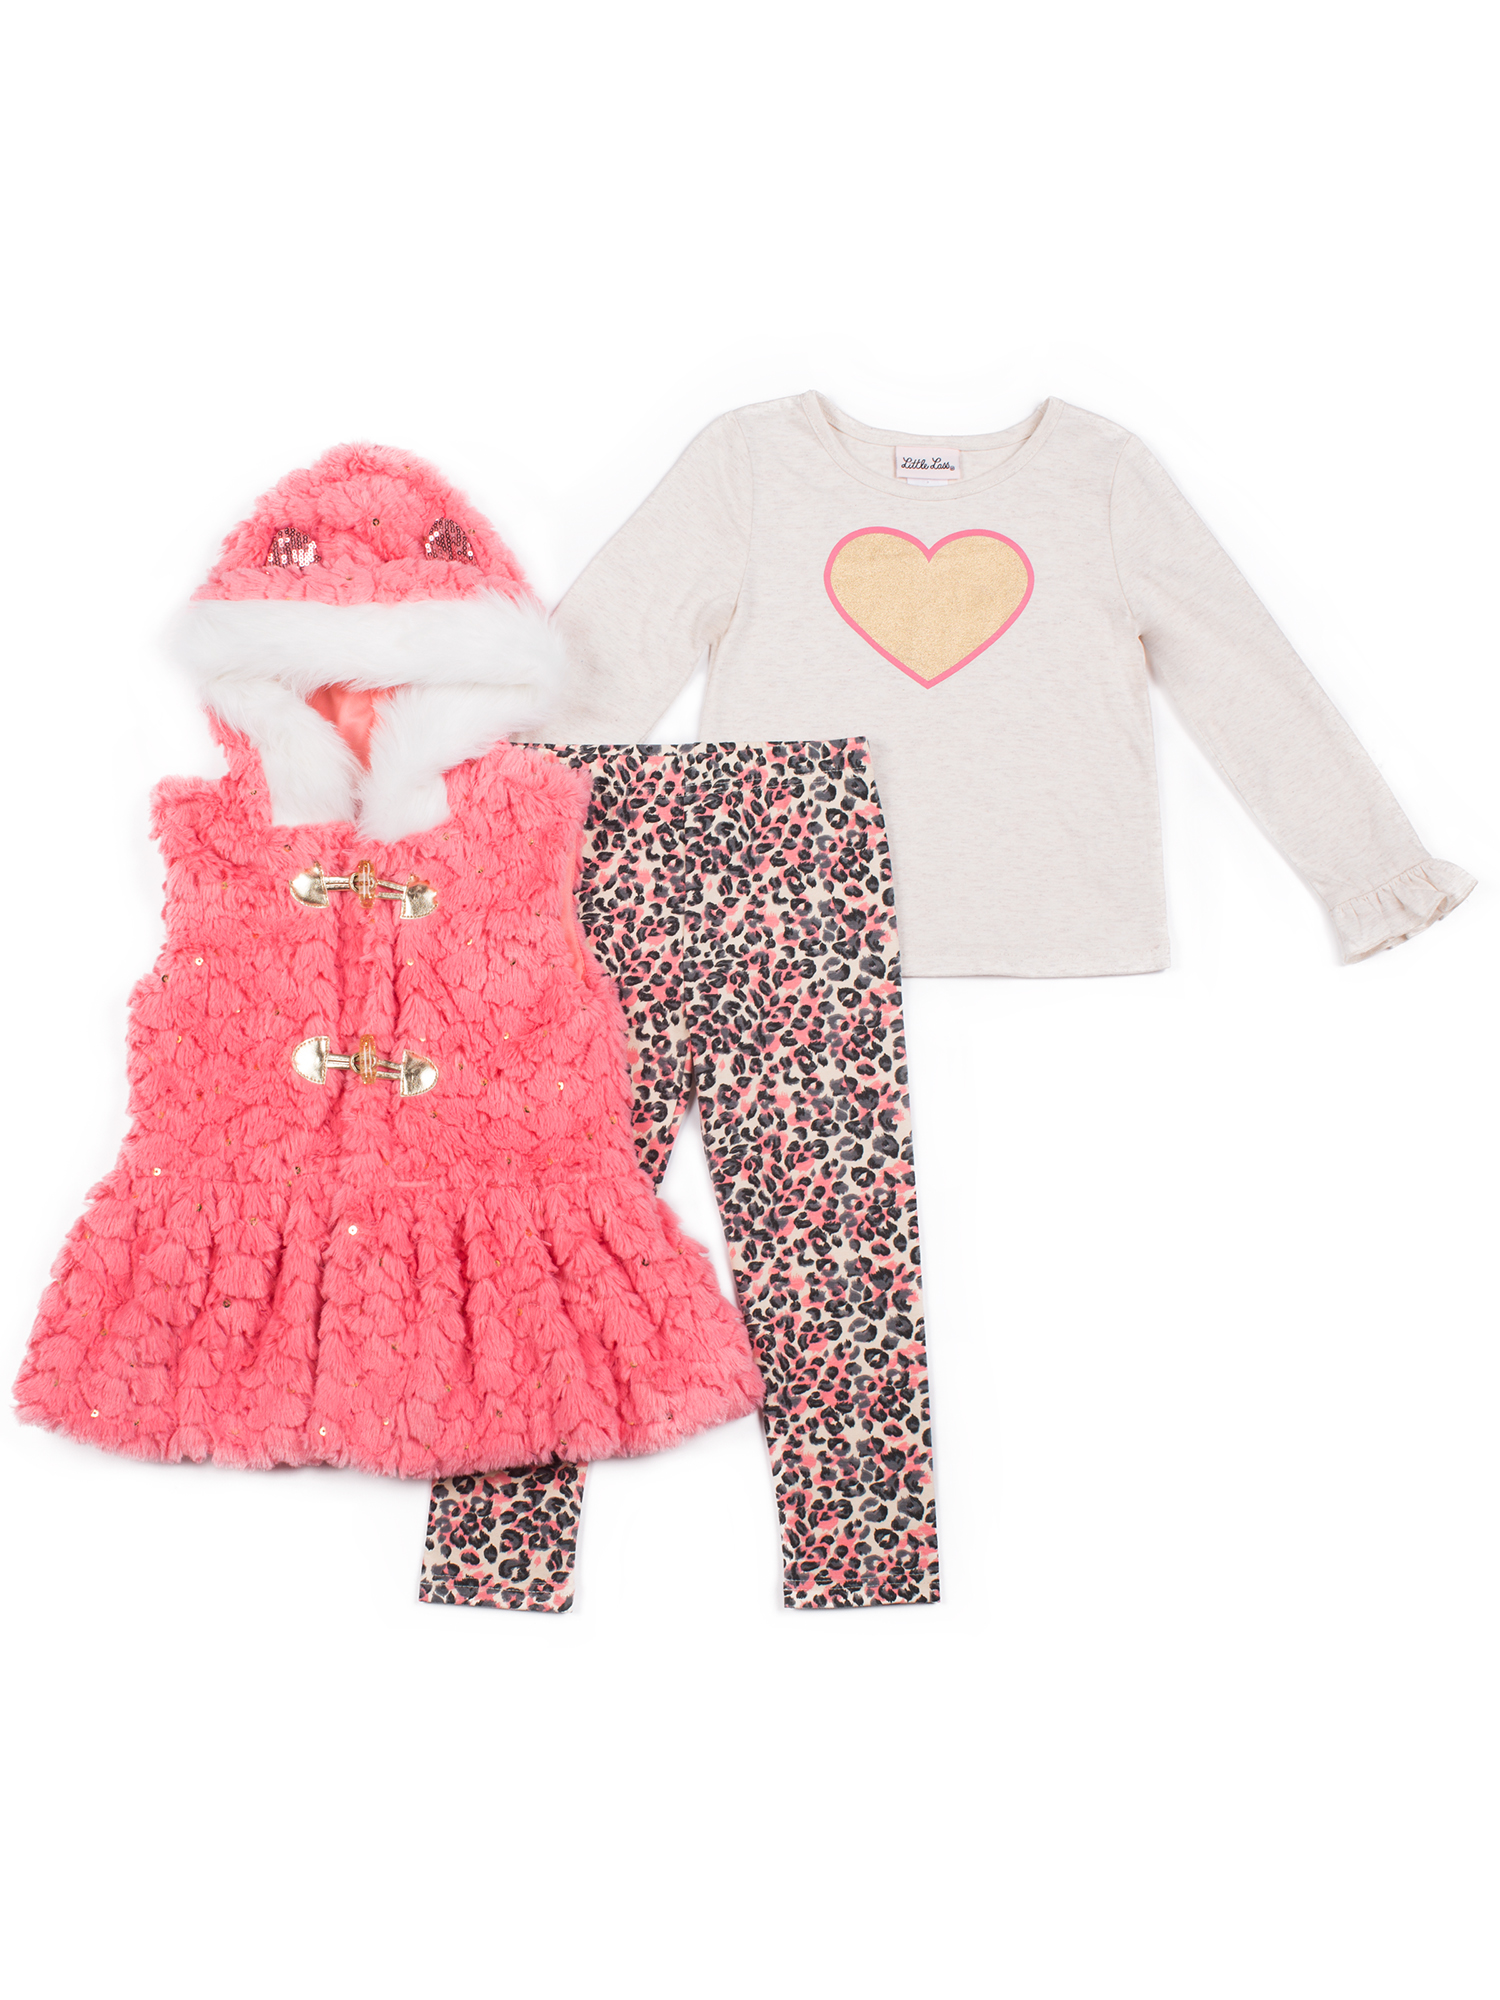 Faux Fur Hooded Vest, Long Sleeve Top & Leggings, 3pc Outfit Set (Baby Girls & Toddler Girls)